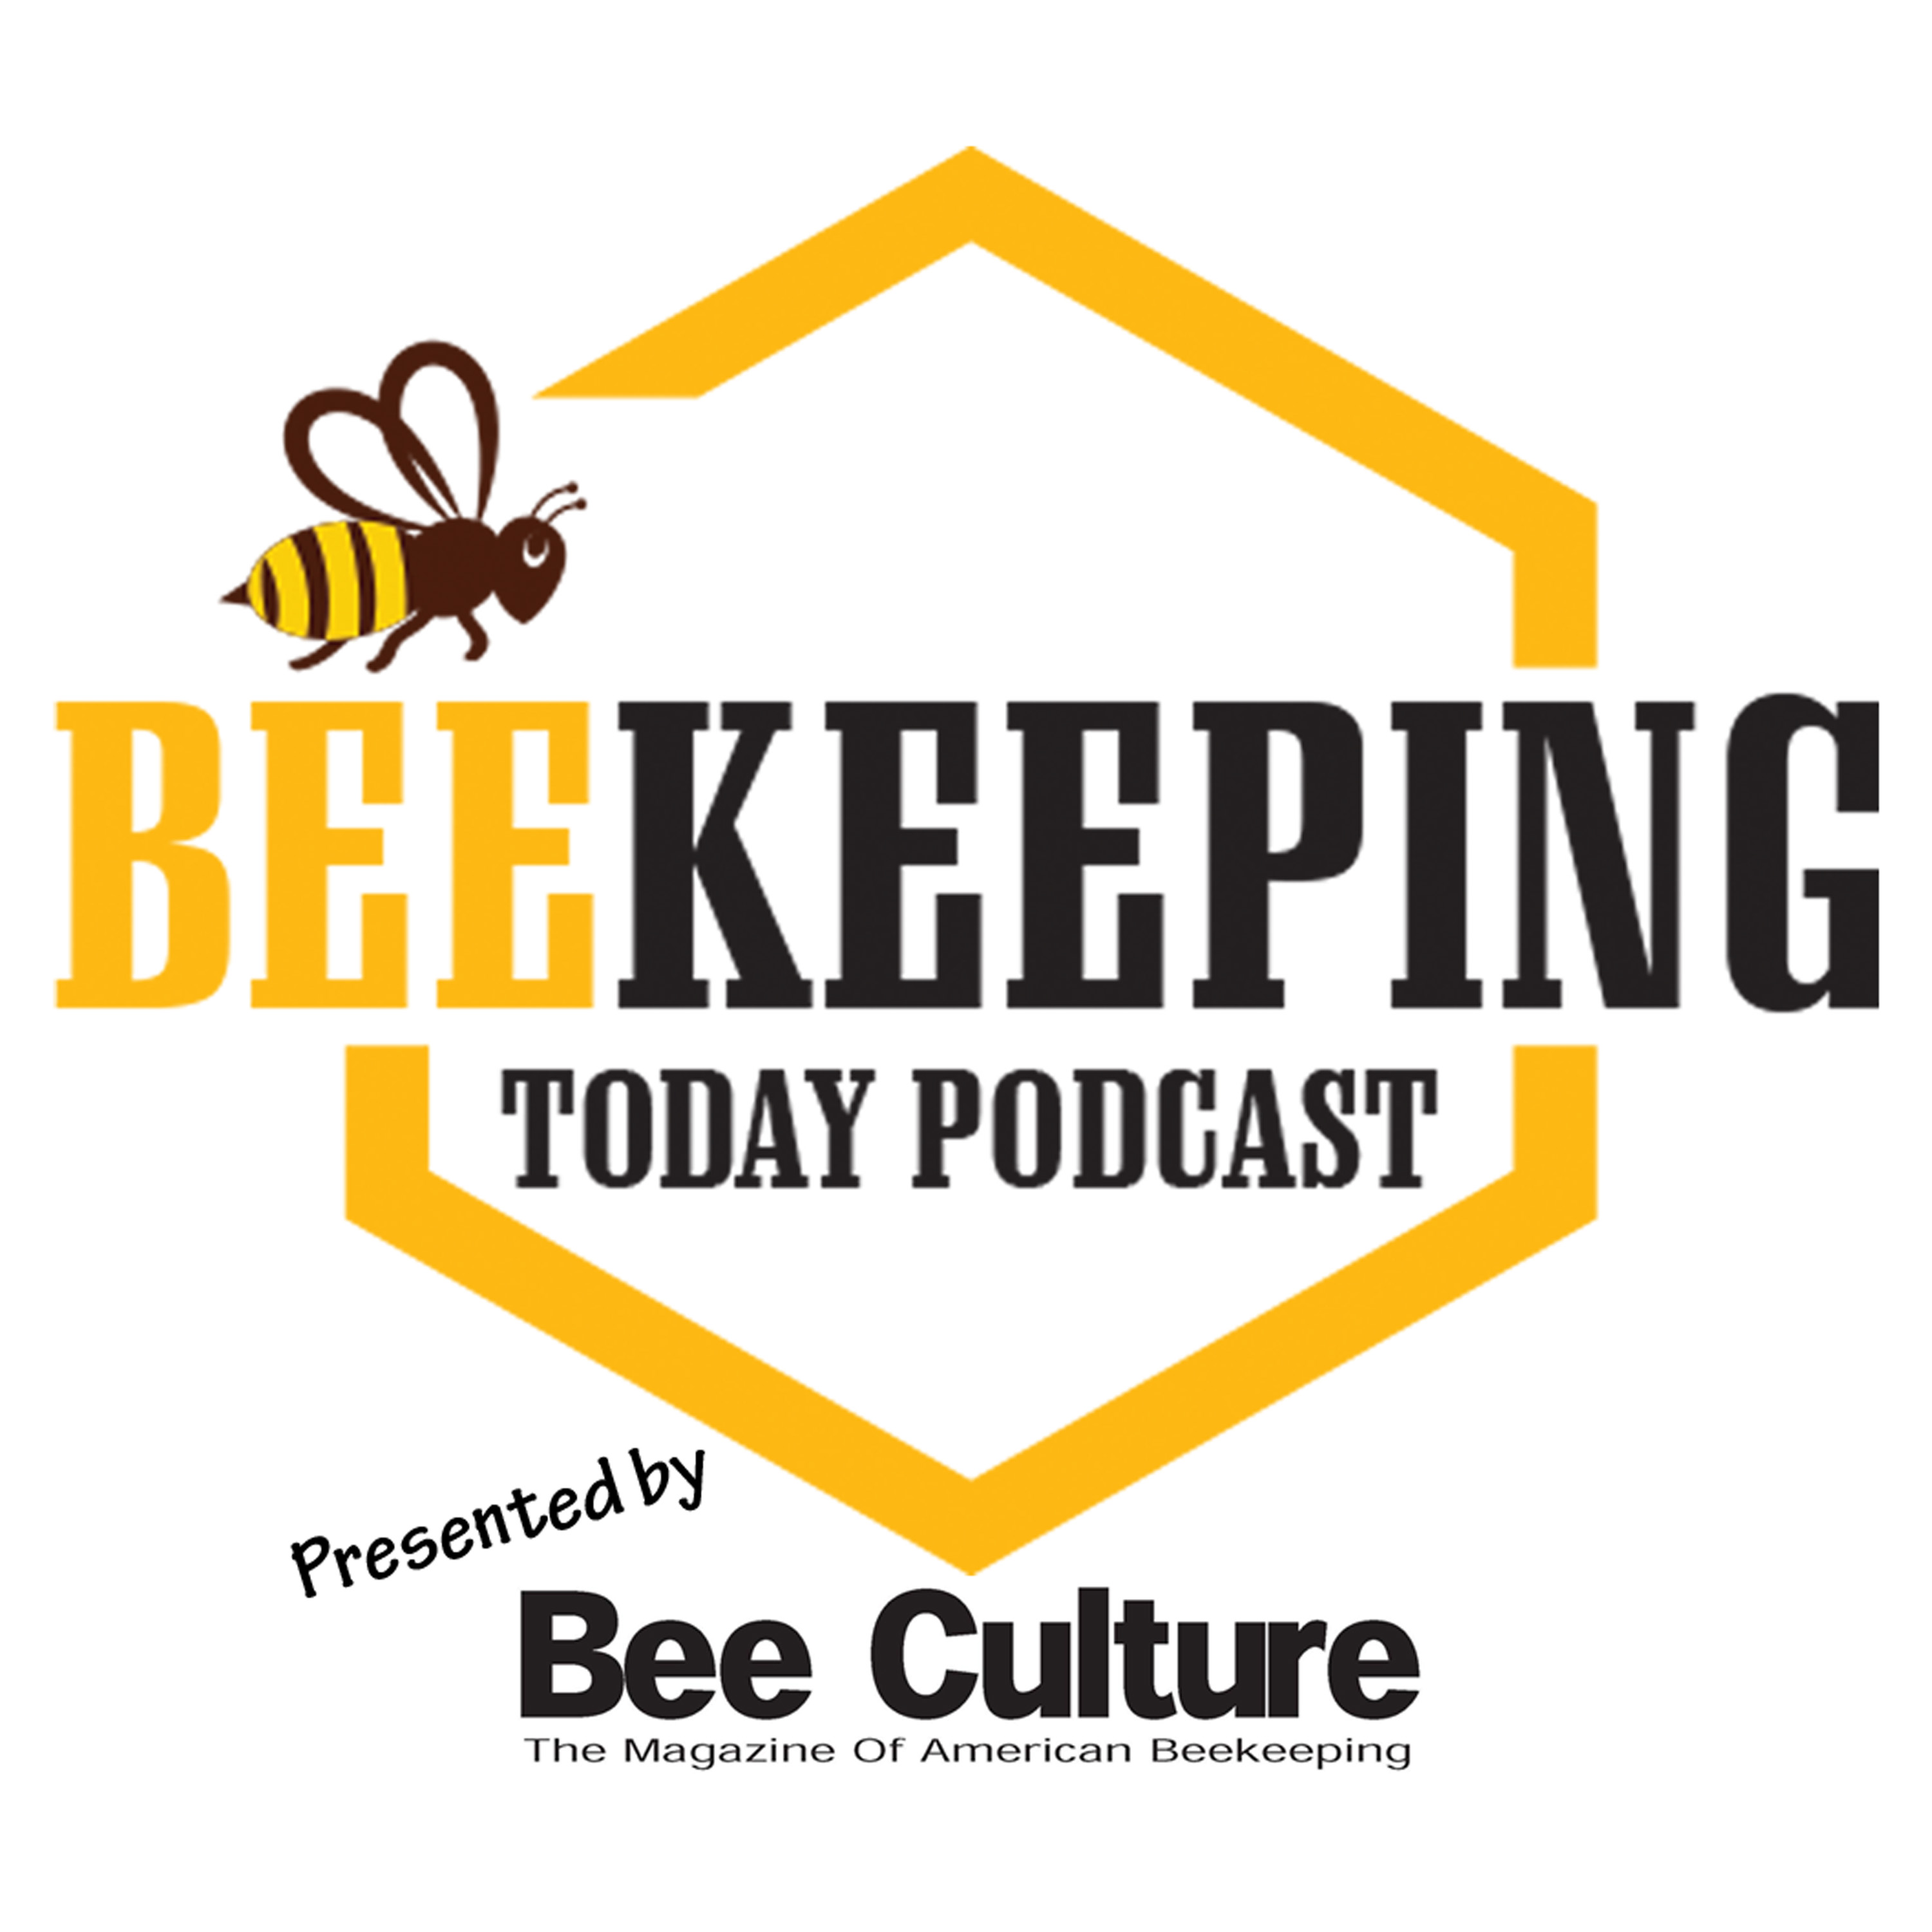 Beekeeping Today Podcast show art